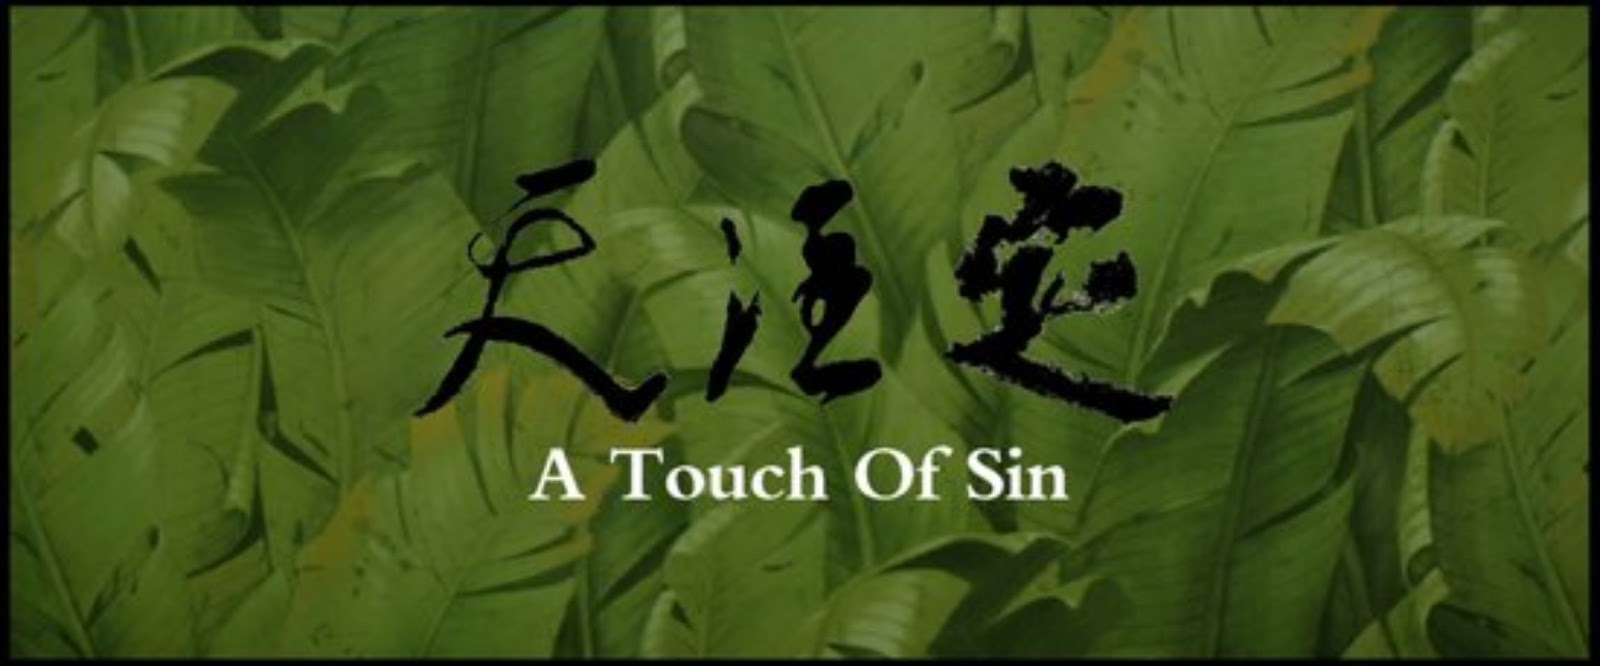 Anna's Amazing Blog!: Everyone is A Touch of Sin